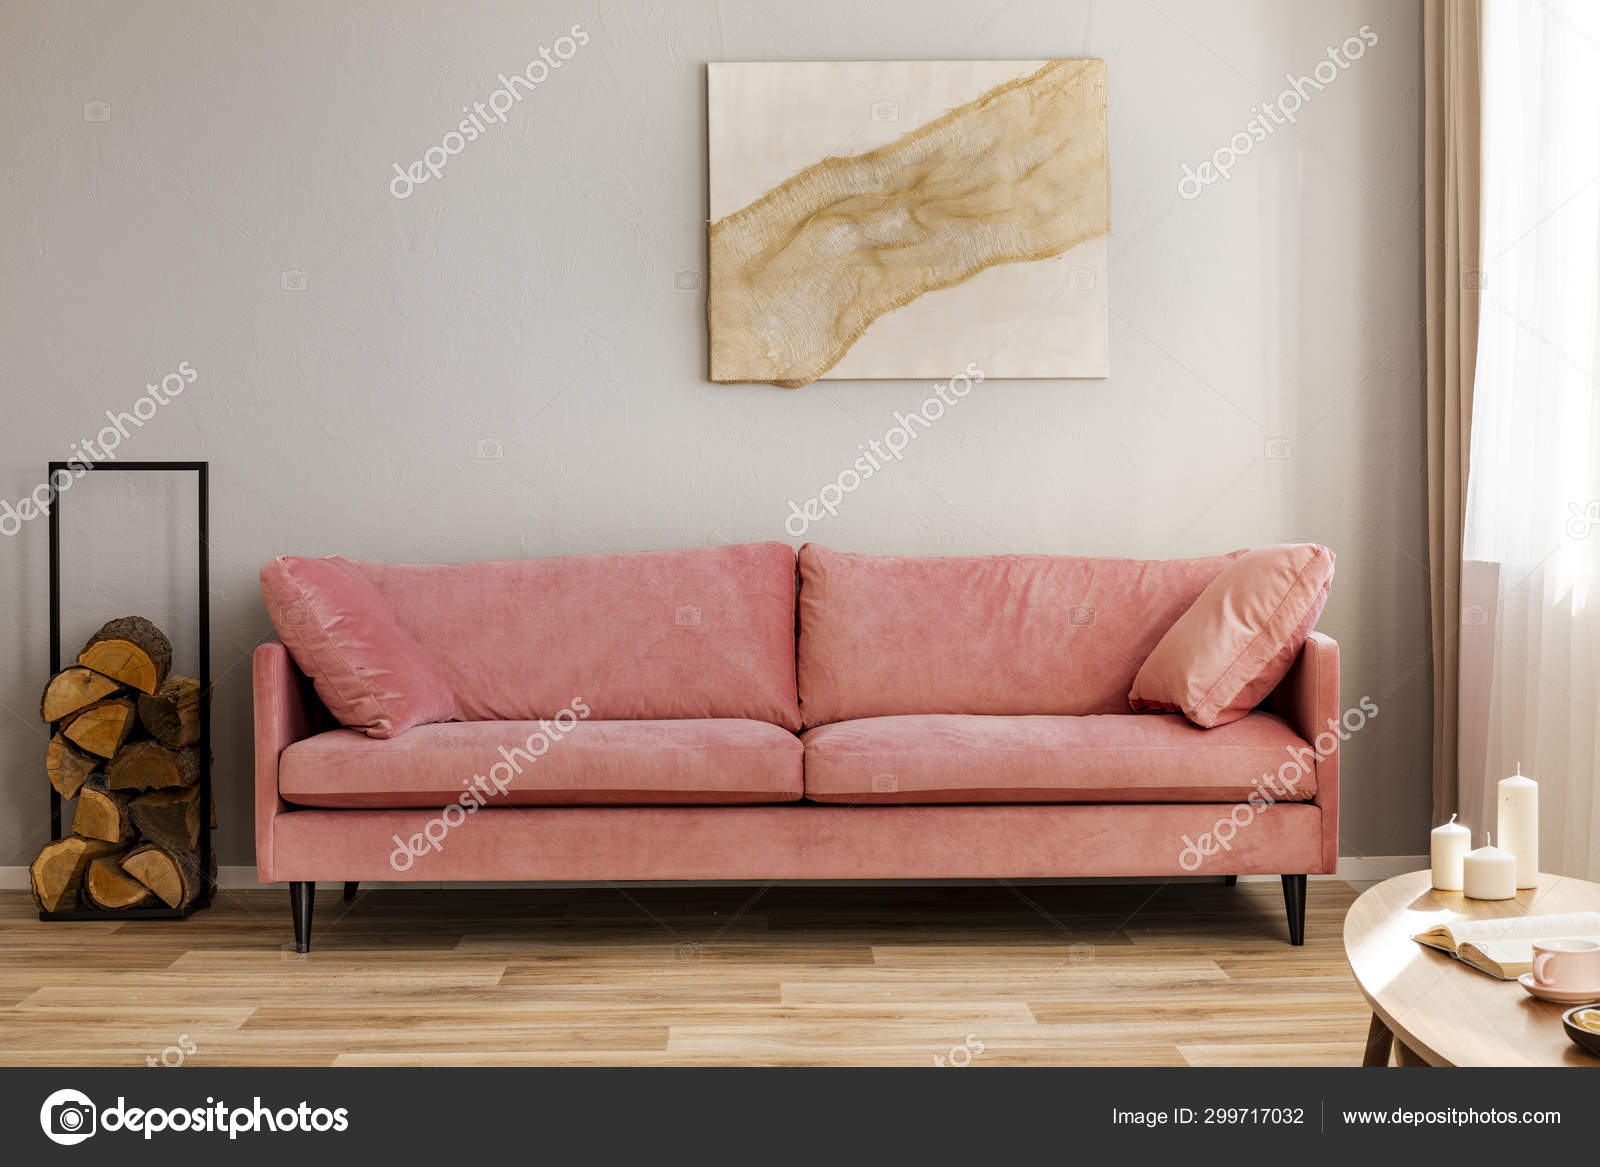 Pastel Abstract Painting On Beige Wall Behind Velvet Pink Settee In Simple Living Room Stock Photo C Photographee Eu 299717032